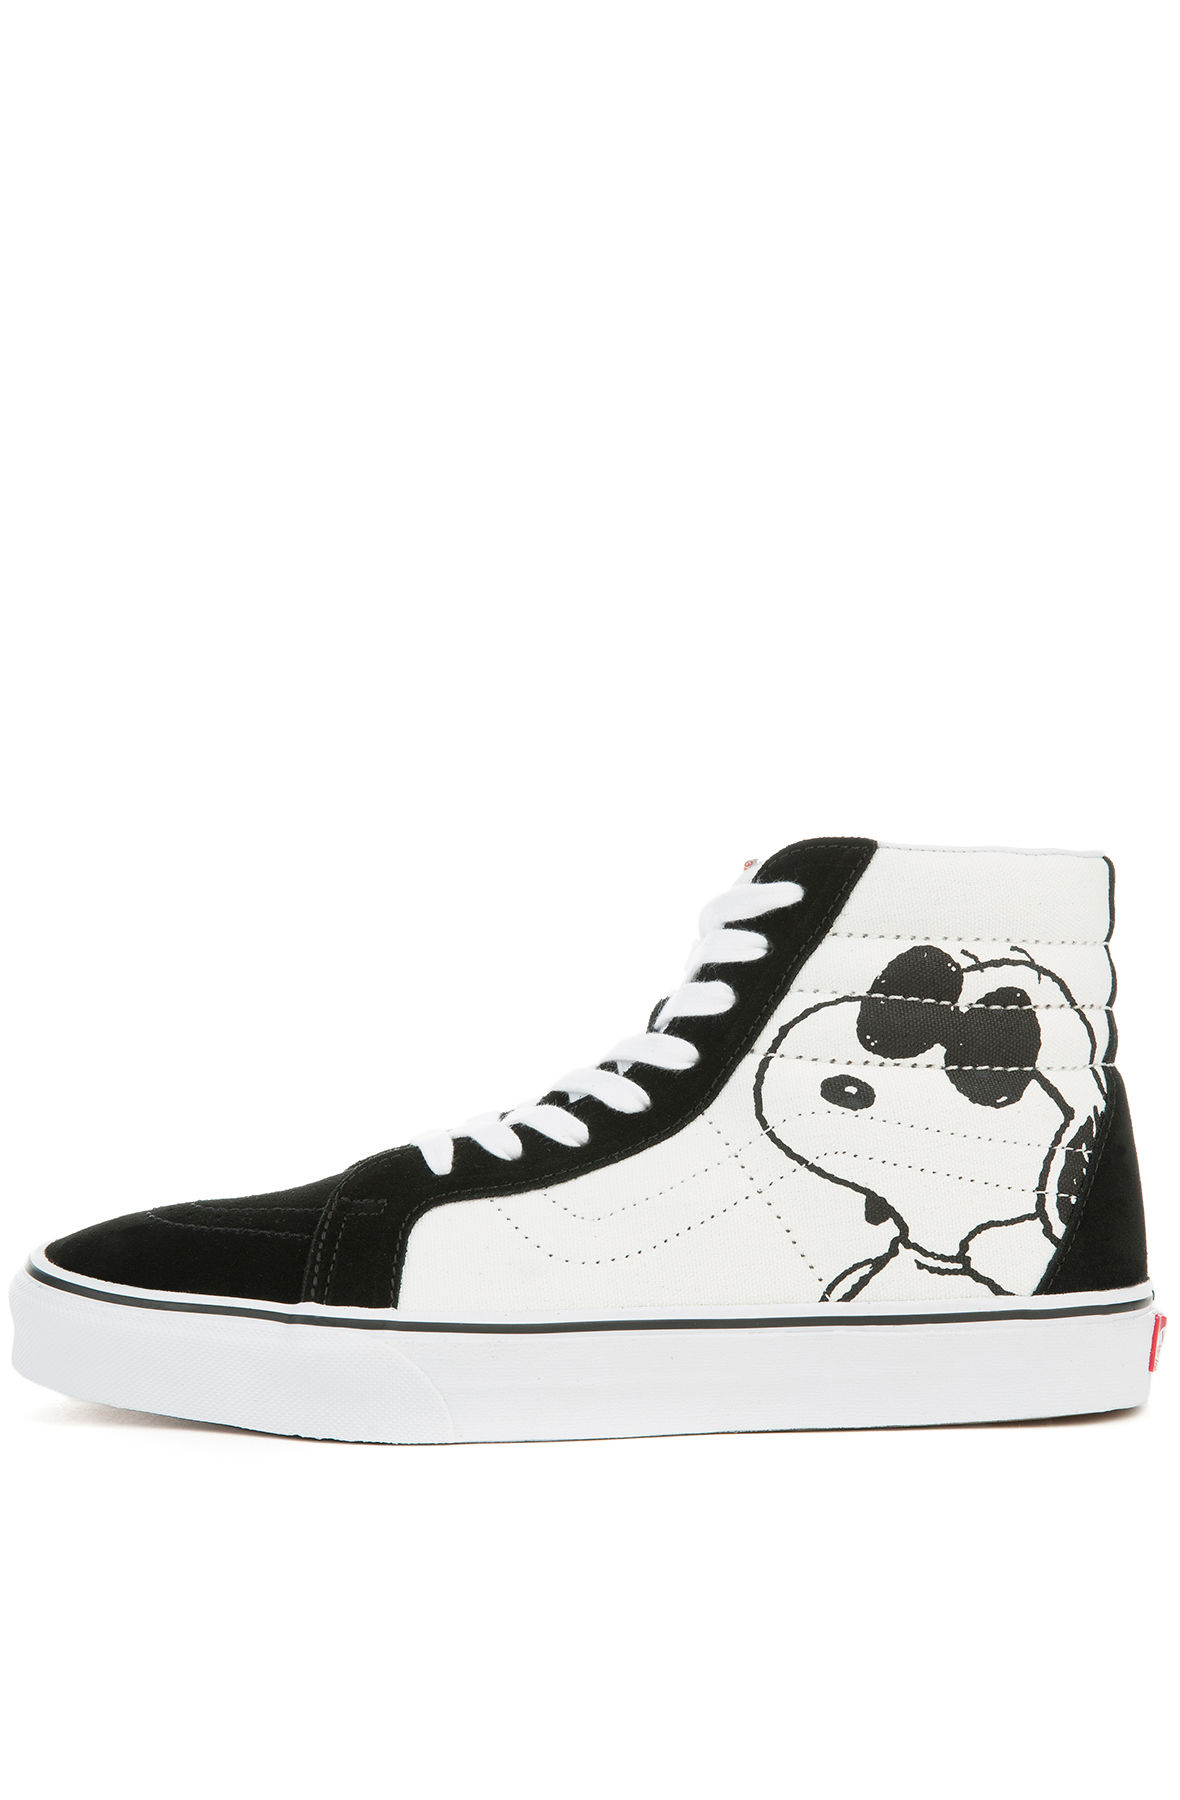 543b9a295a VANS Sneakers x Peanuts Sk8-Hi Reissue Joe Cool Black